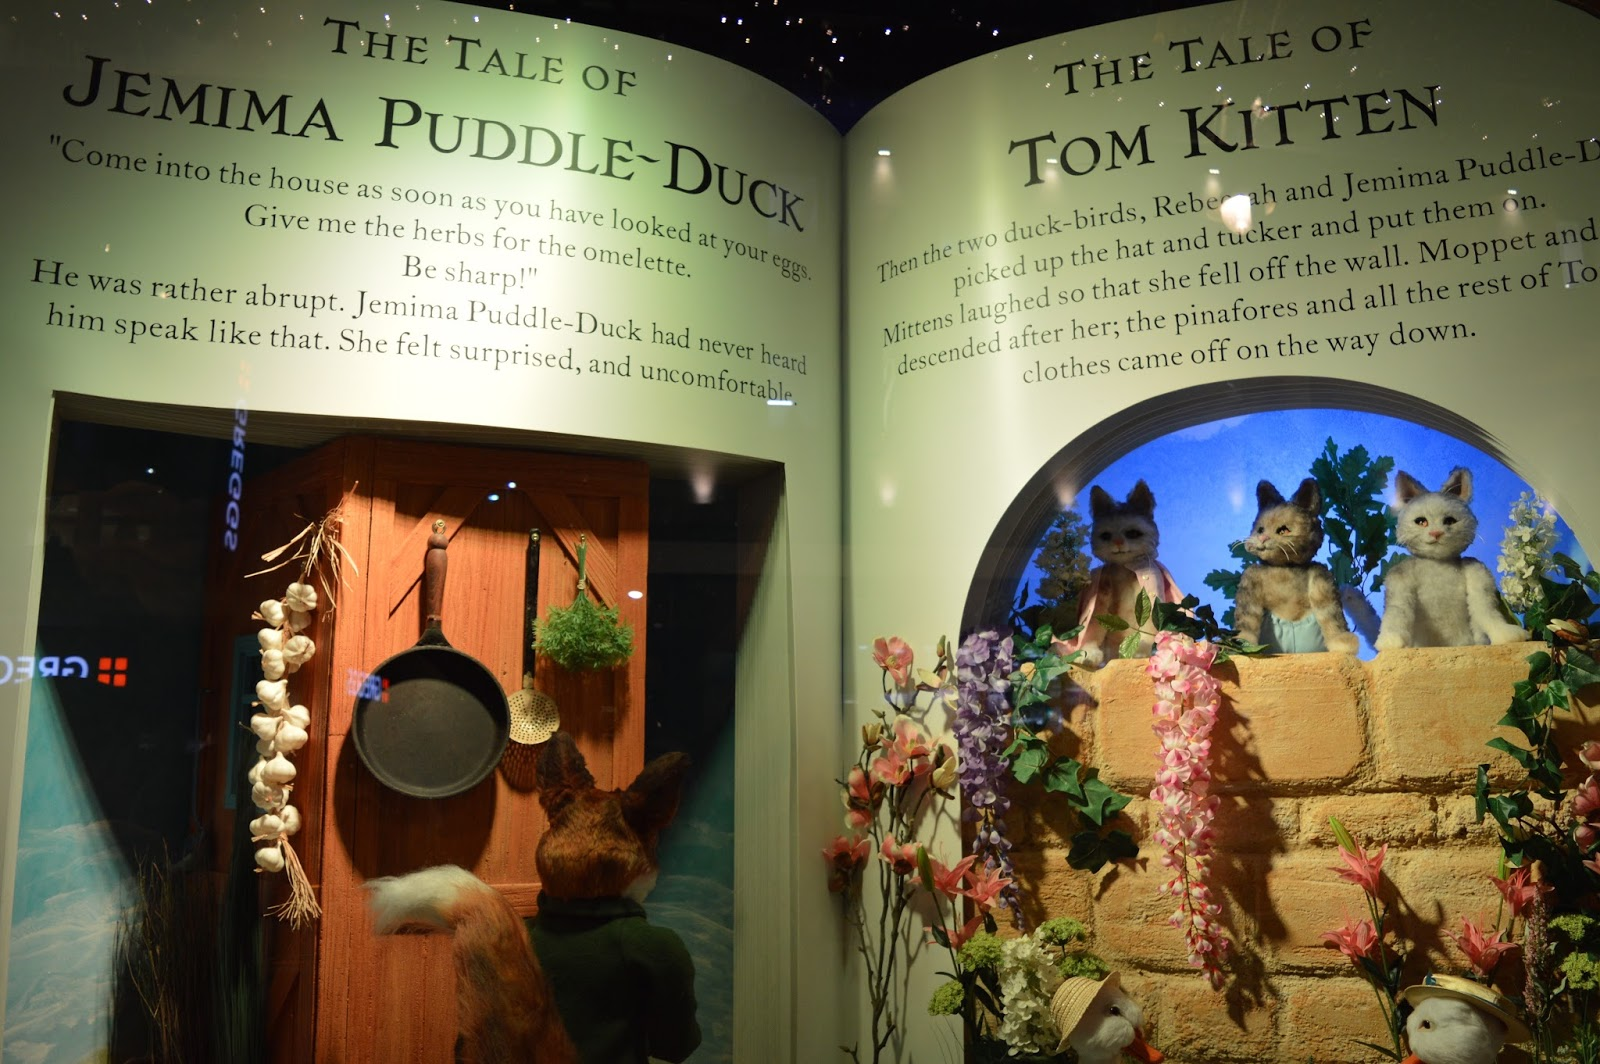 Fenwick's Window Newcastle 2016. Beatrix Potter / Peter Rabbit theme - Jemima puddle duck